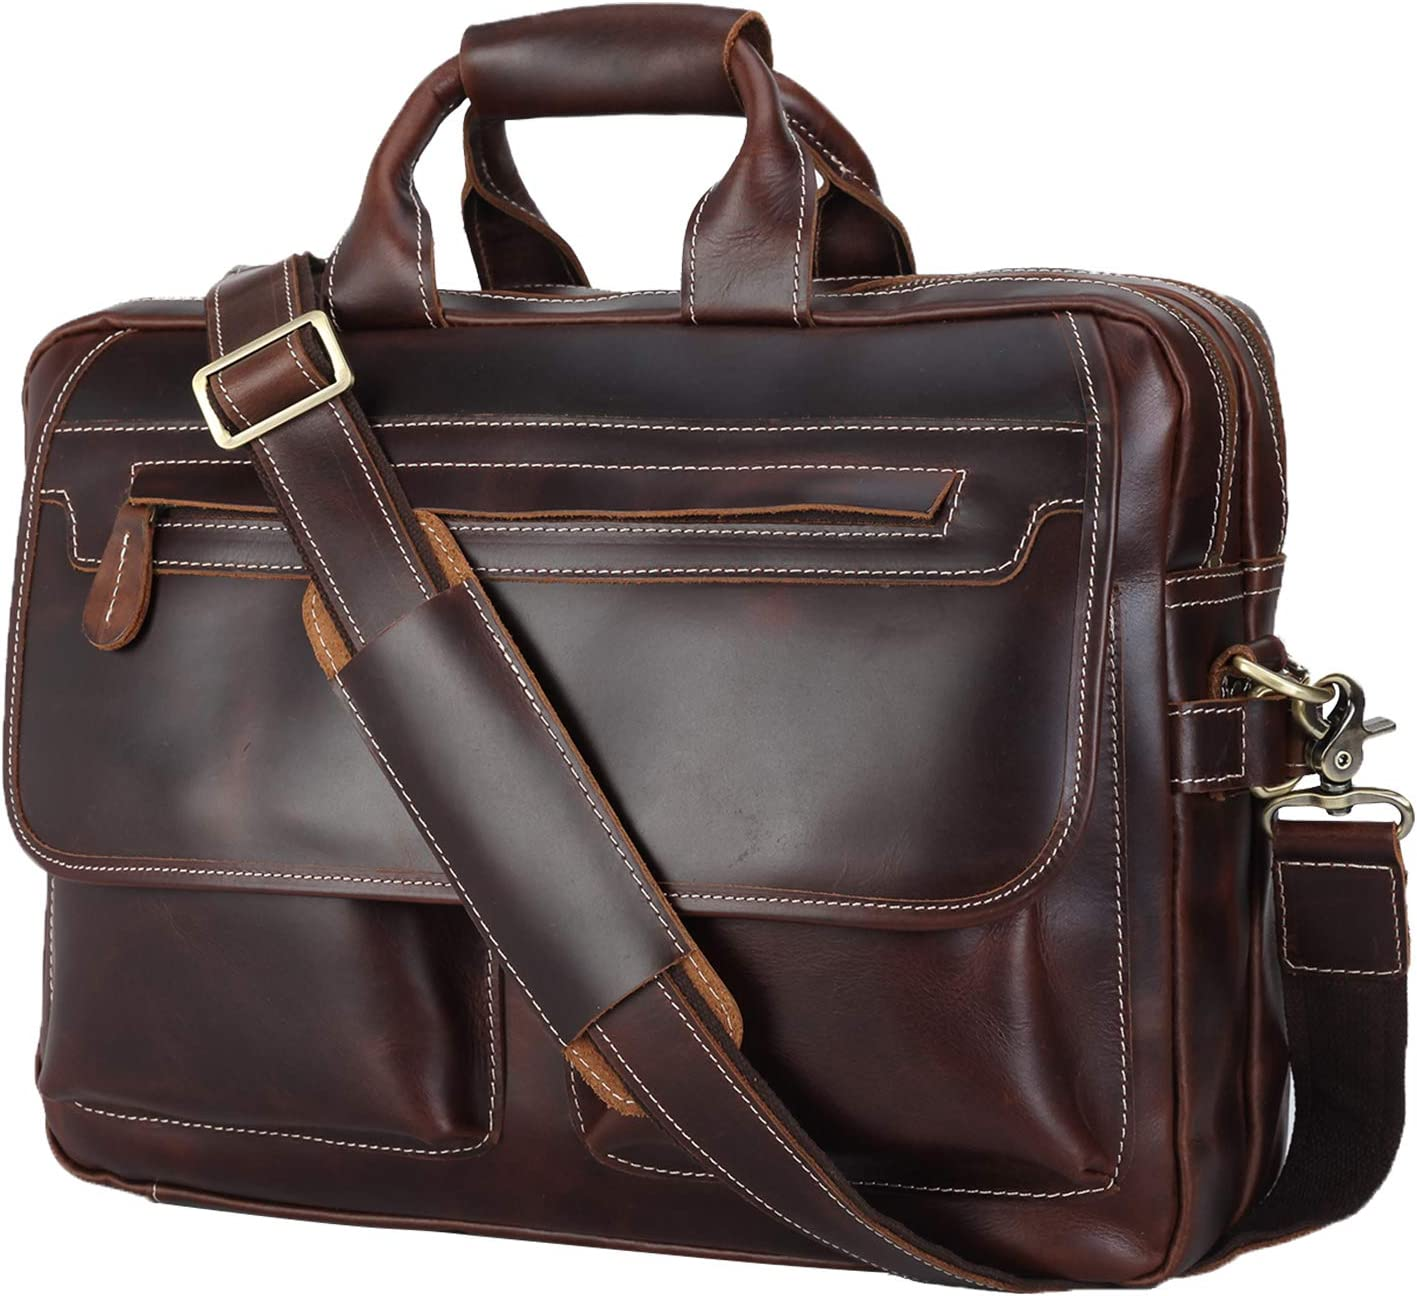 Texbo Vintage Cowhide Leather 15.6 Inch Laptop Briefcase Messenger Bag with YKK Metal Zipper Version 2019